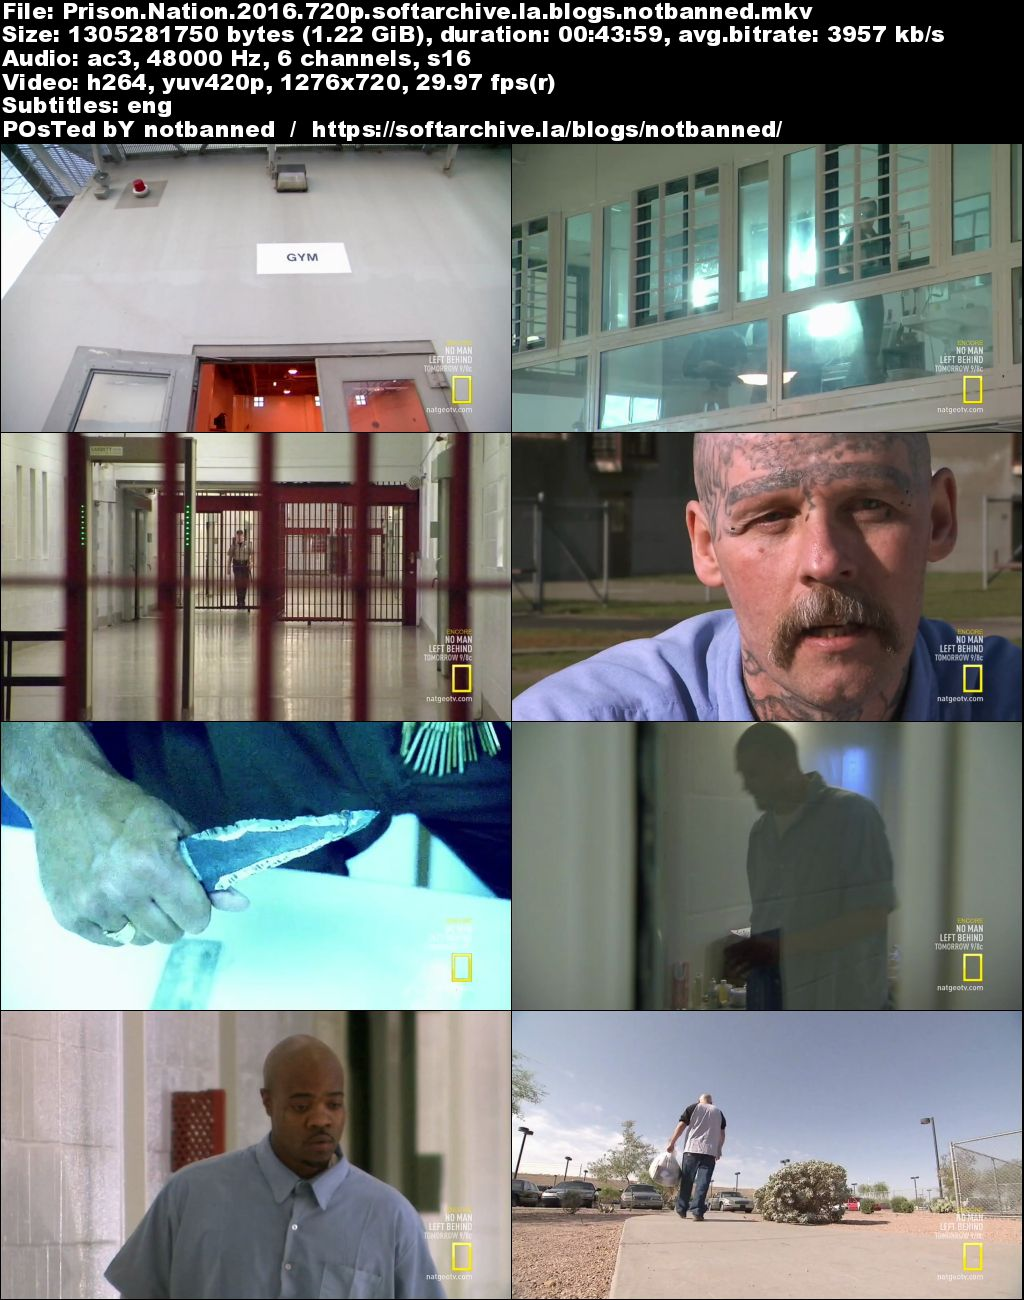 Download National Geographic Prison Nation 2016 720p Hdtv X264 Dhd Softarchive